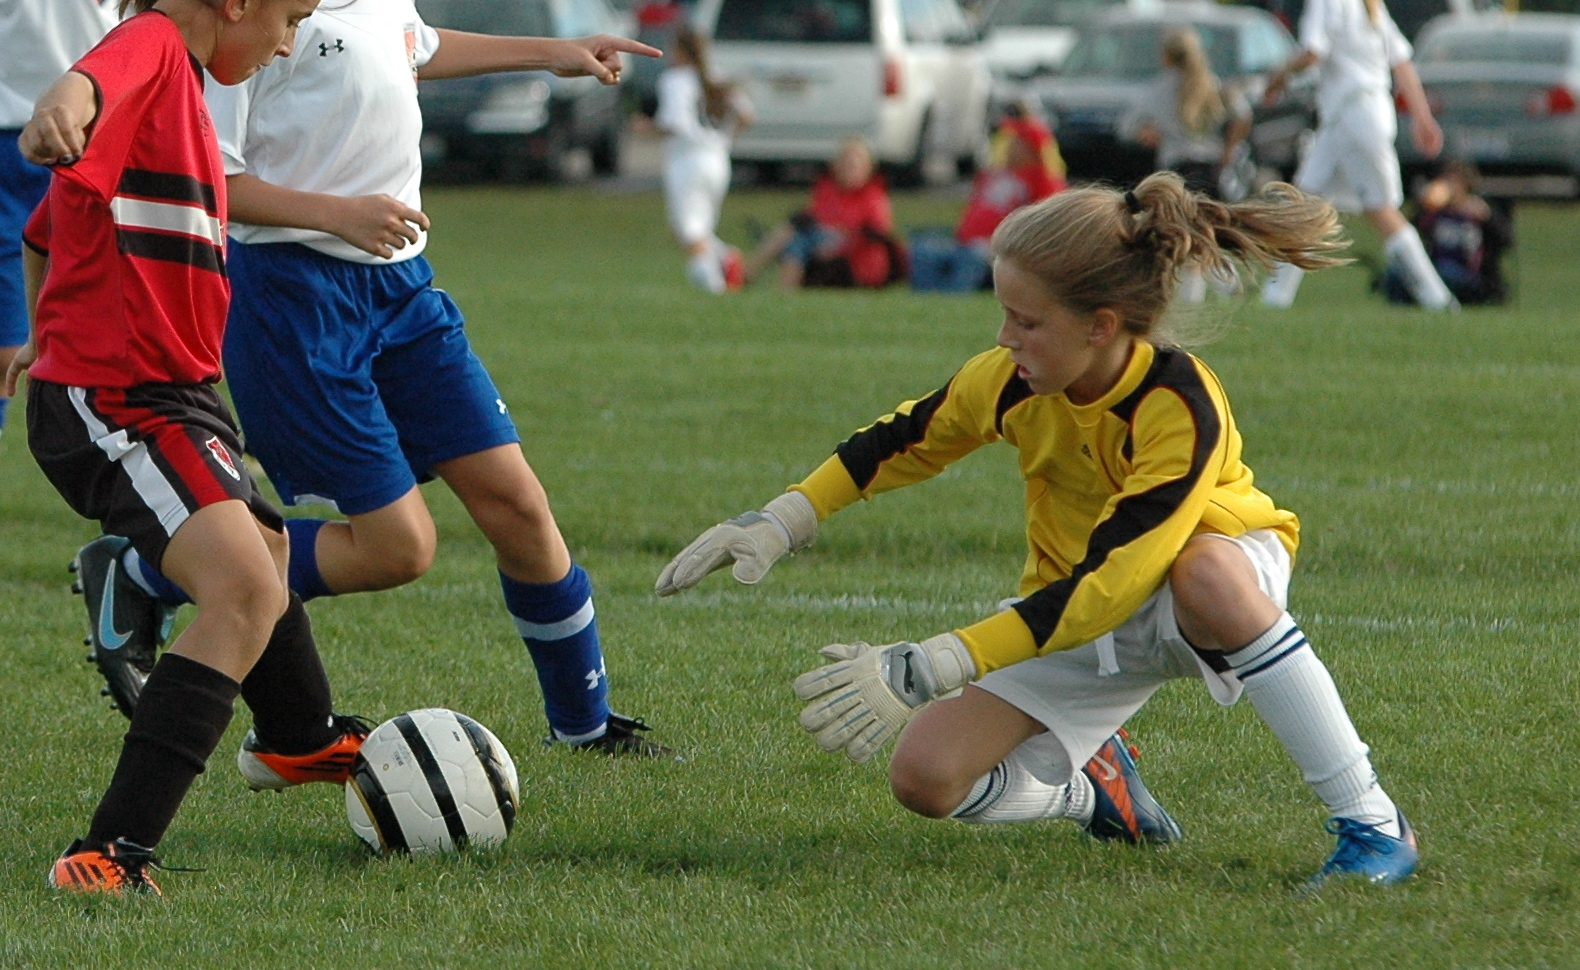 youth soccer willing sports ready action able camera goalie recommend shots equipment start right stats